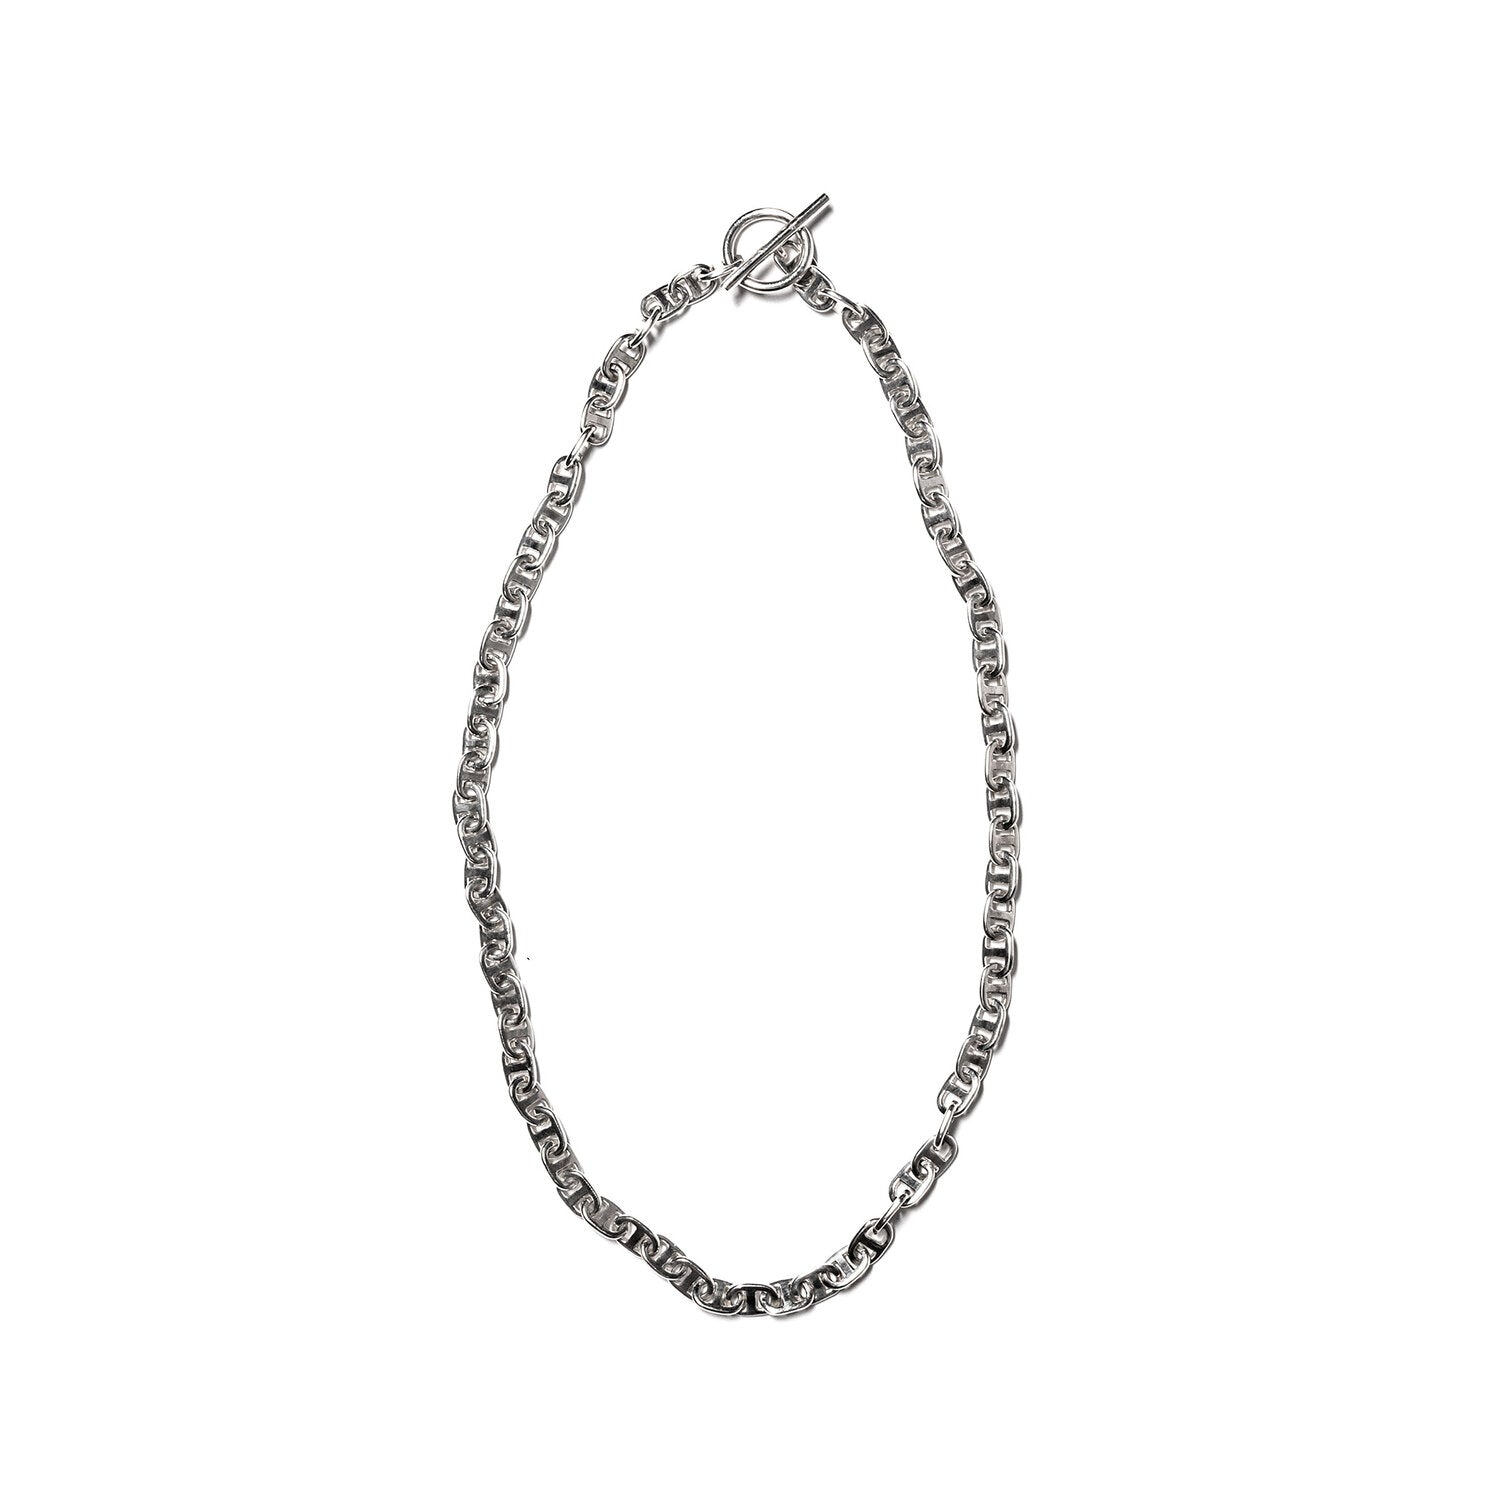 MAPLE JEWELERY CHAIN LINK NECKLACE 7mm (SILVER 925)